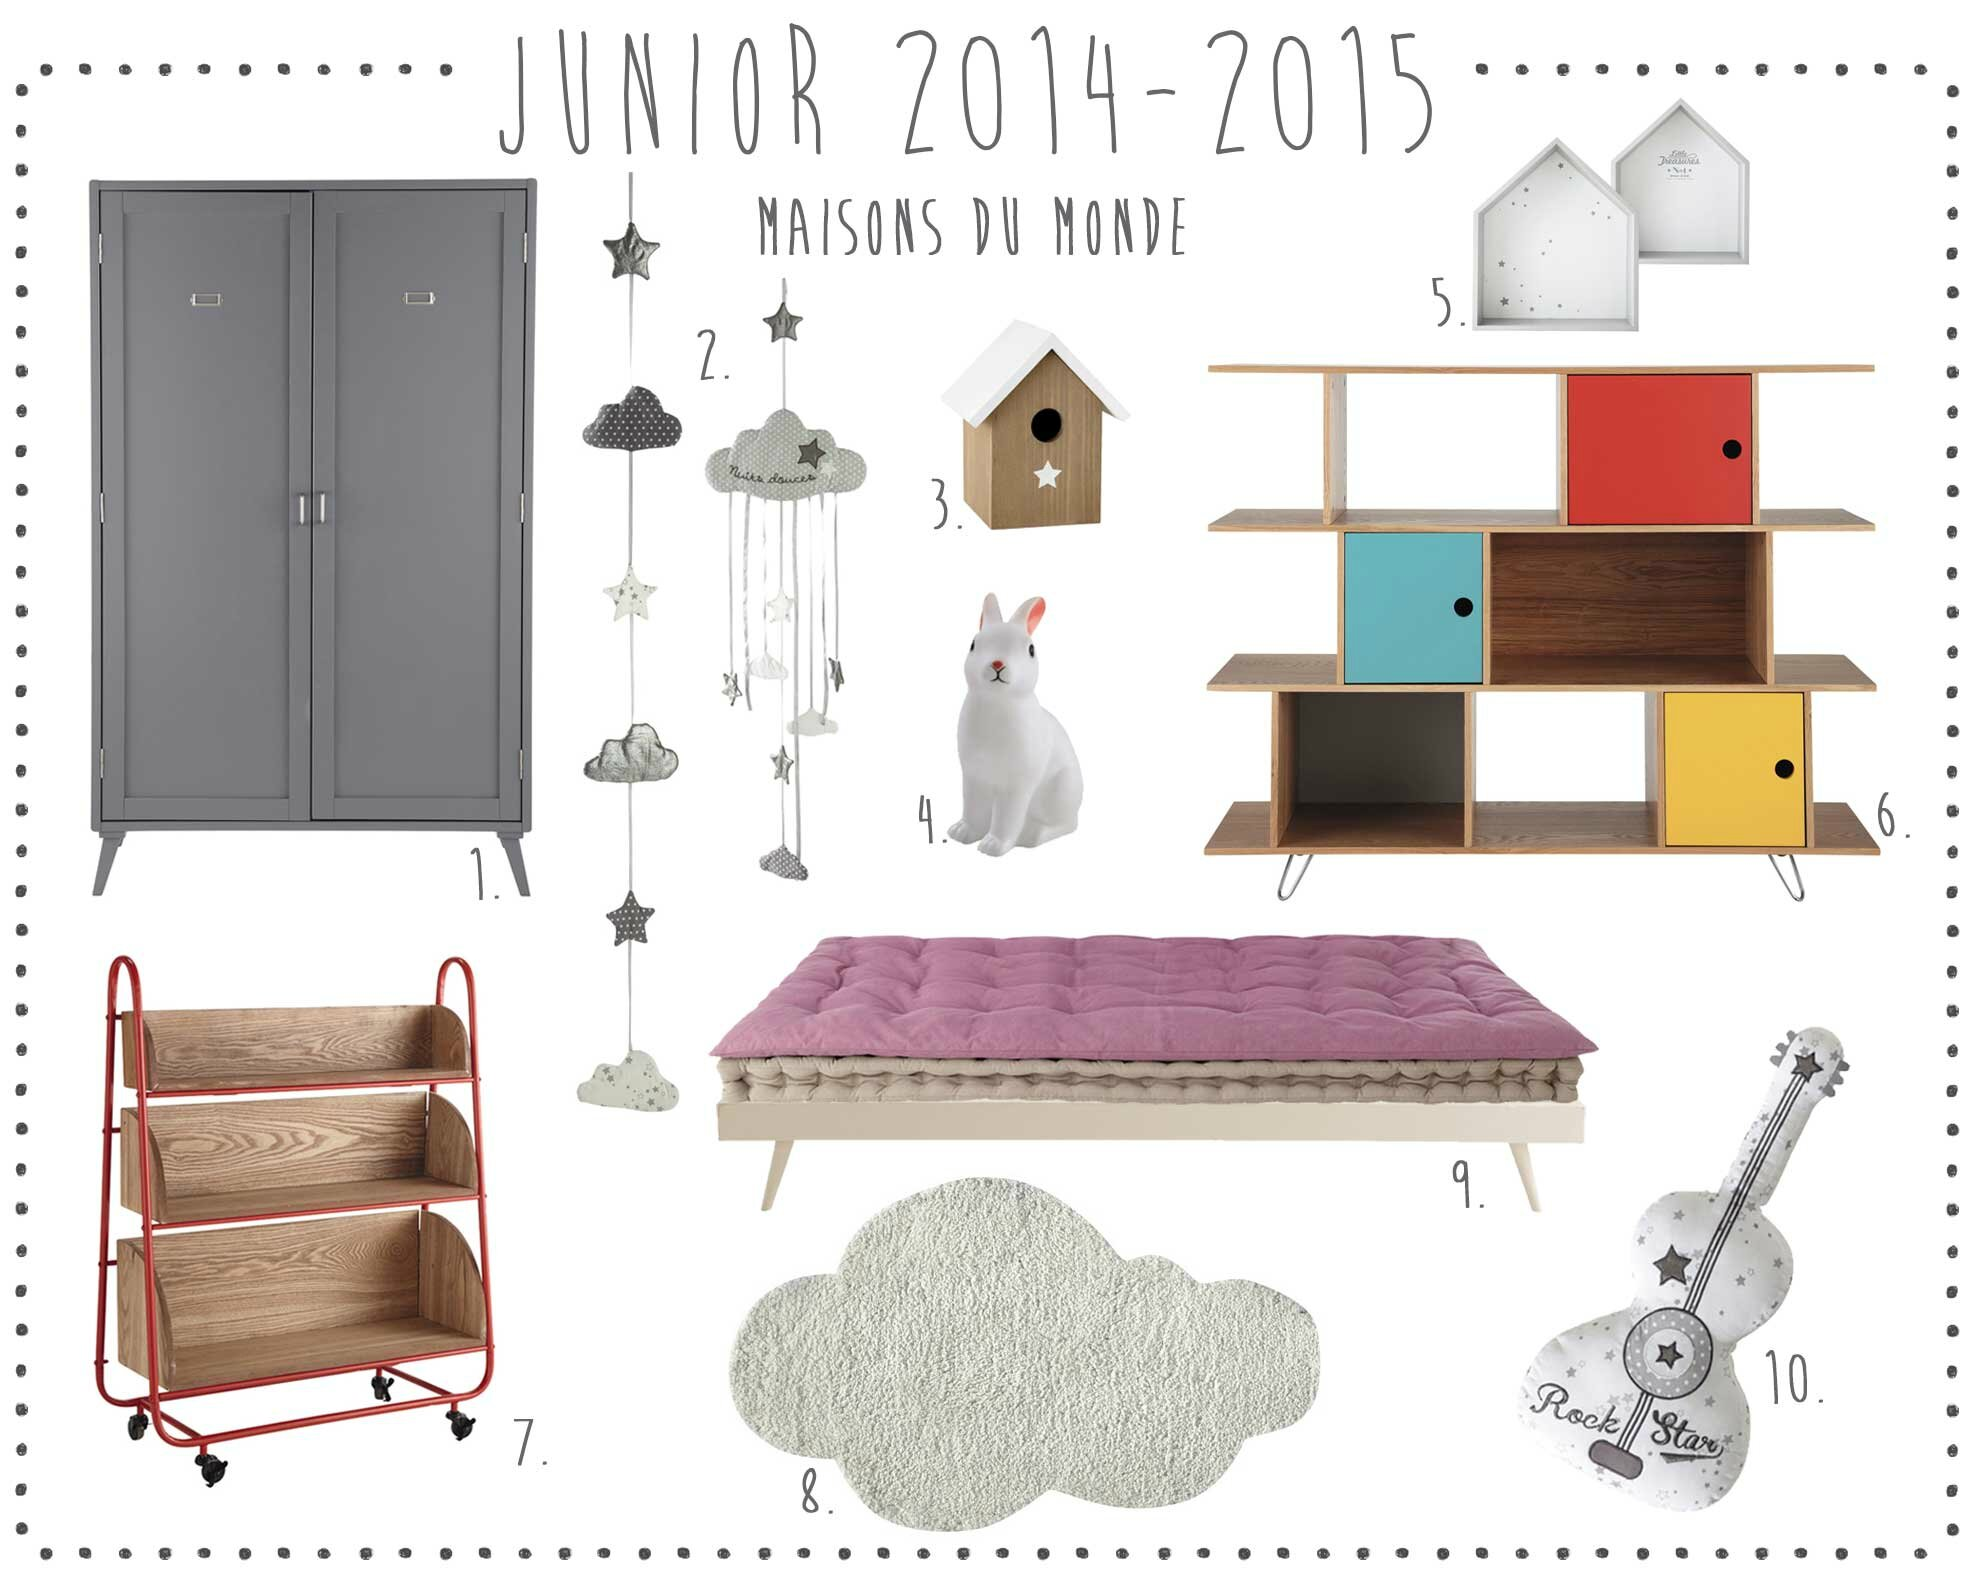 ma wishlist du catalogue junior maisons du monde 2014 2015 deco trendy a t e l i e r. Black Bedroom Furniture Sets. Home Design Ideas